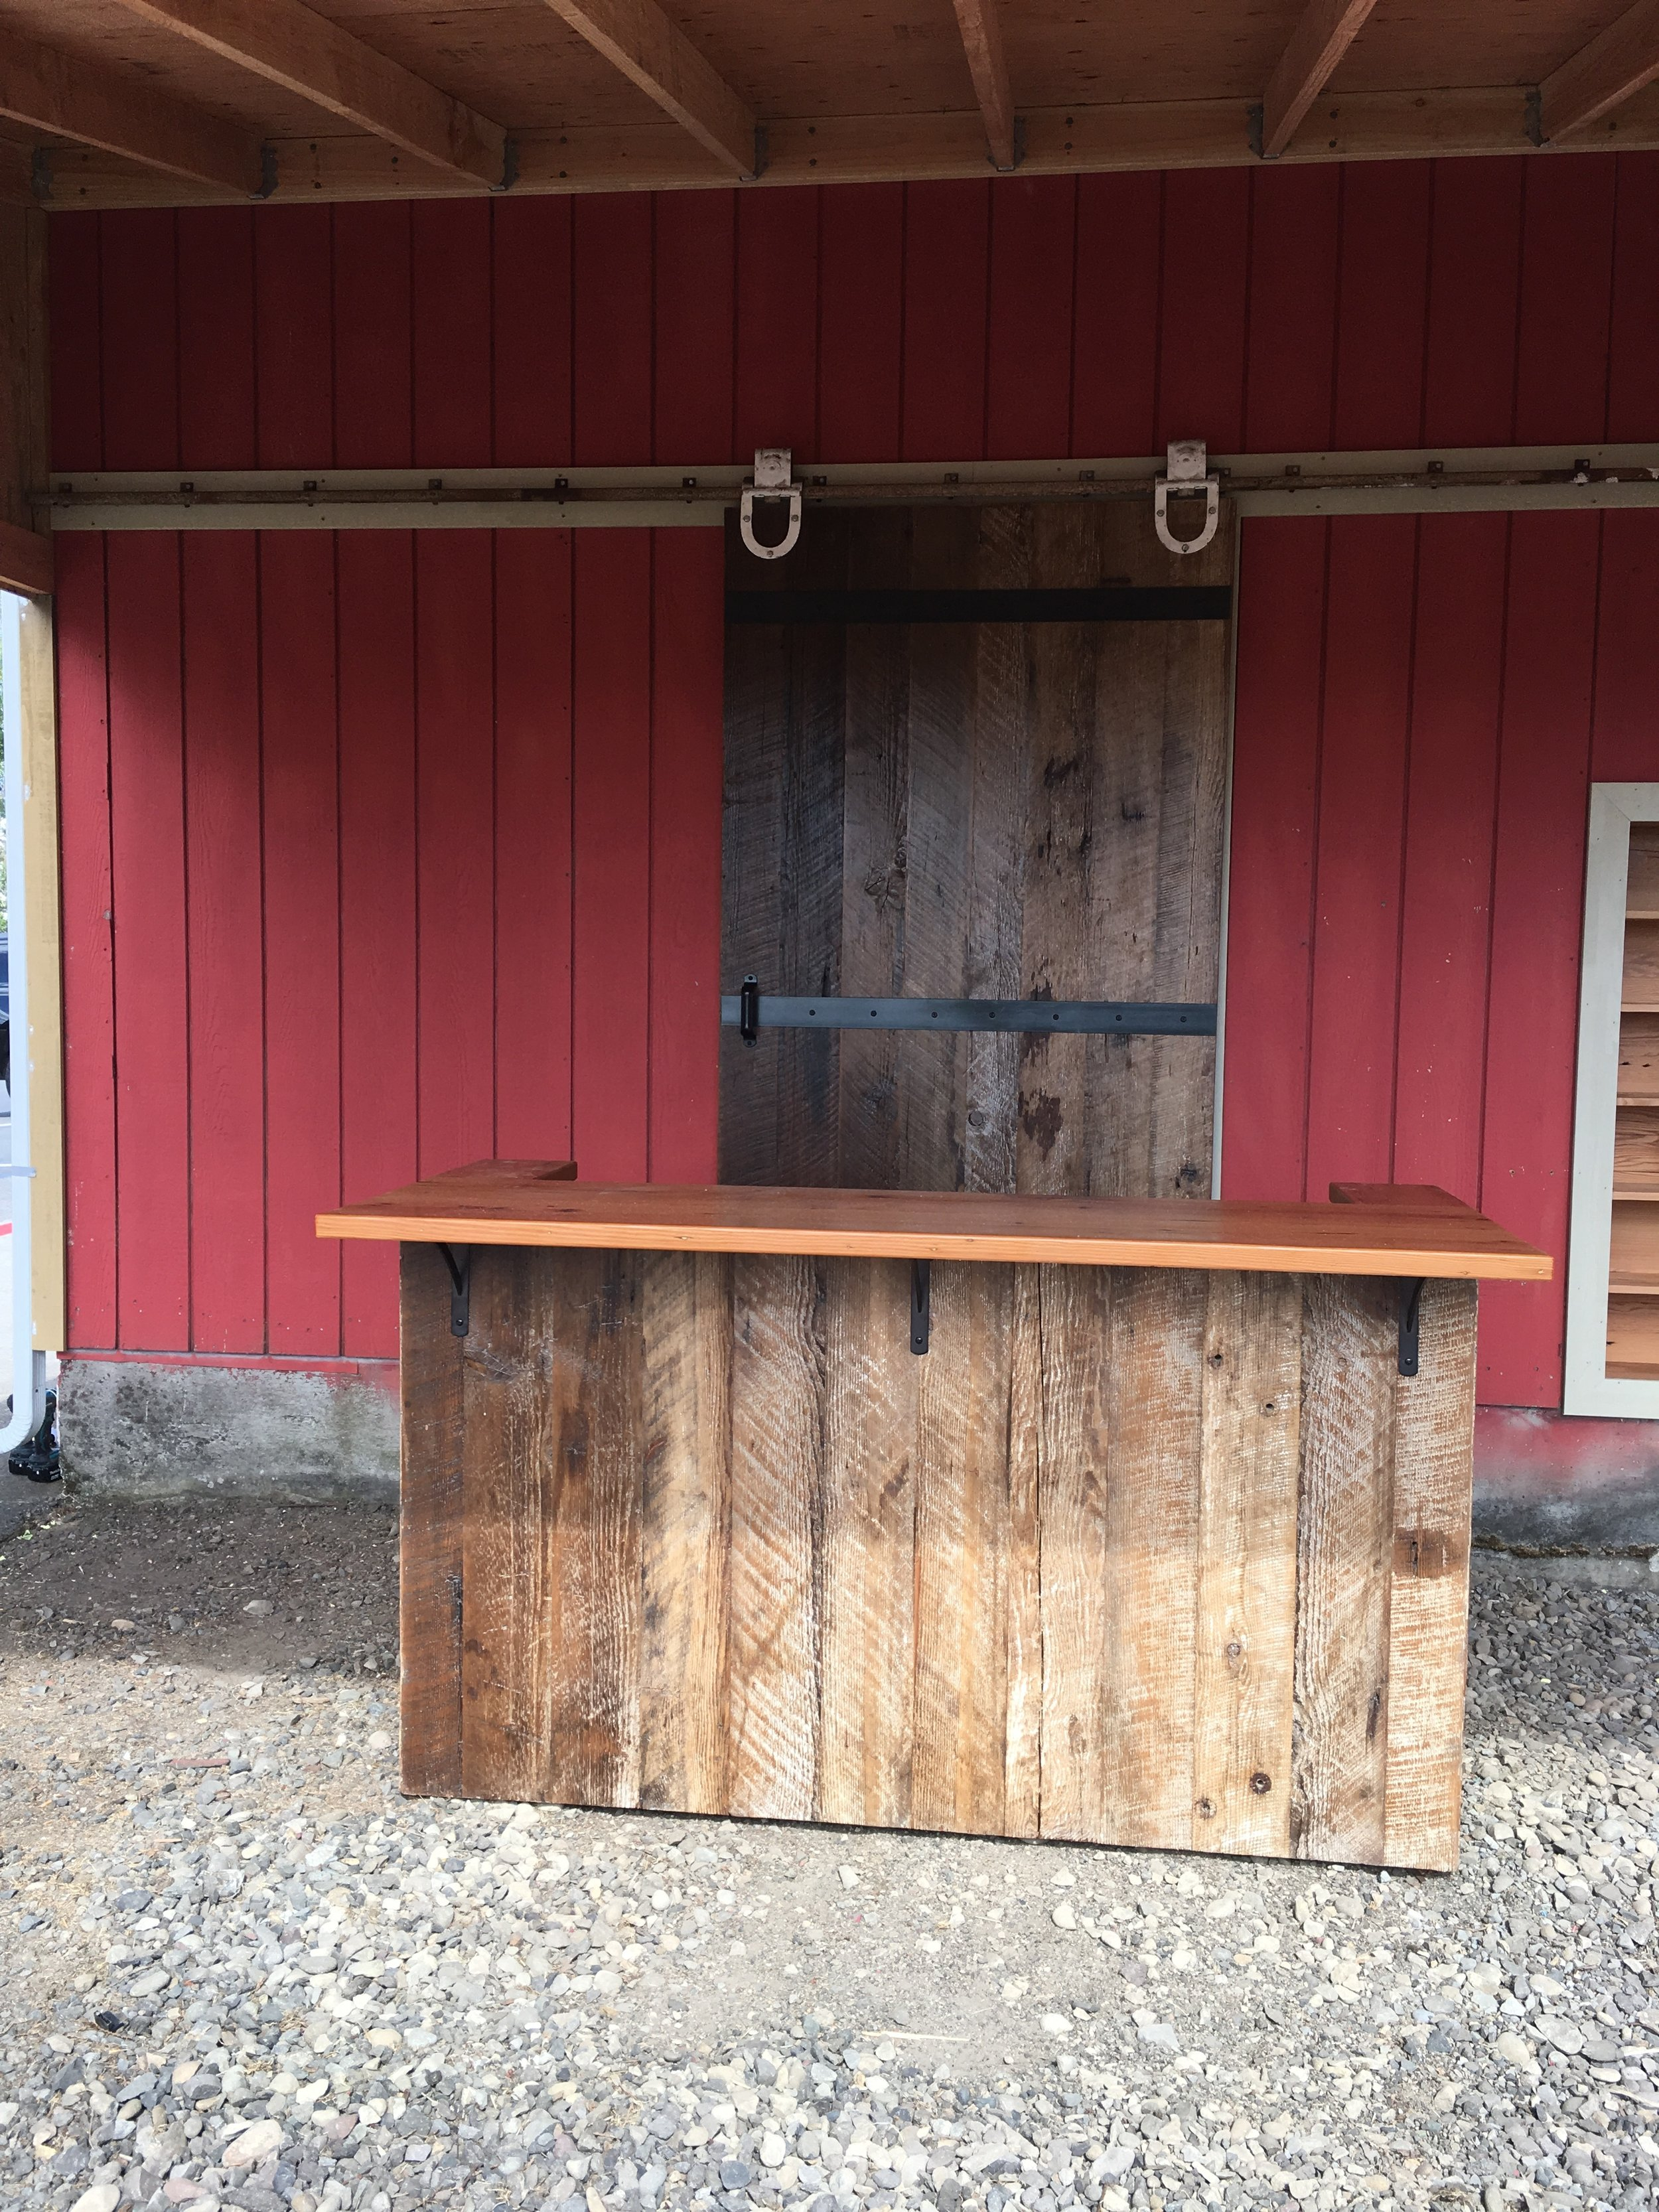 Custom bar and barn door using reclaimed wood from the property